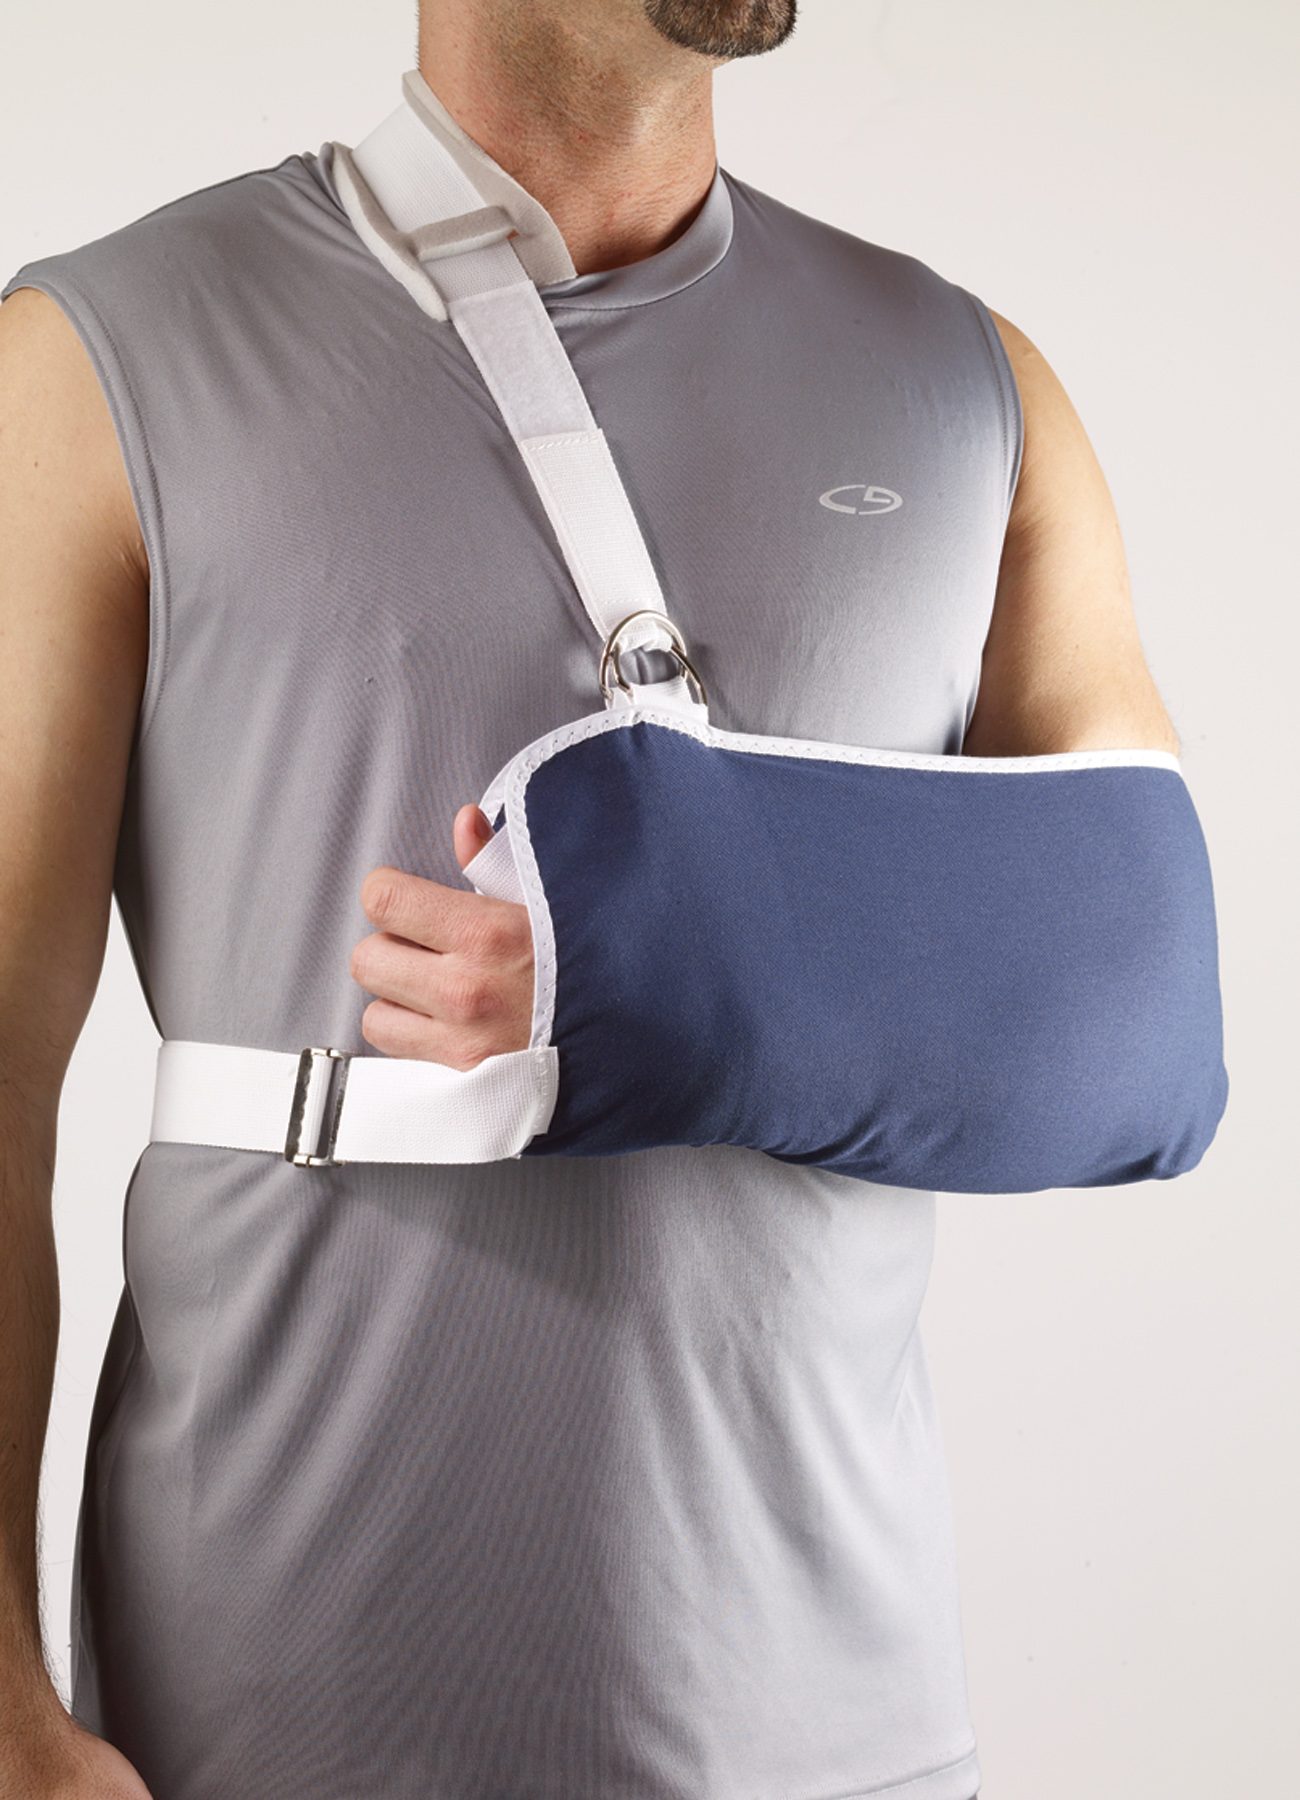 Ultra Shoulder Immobilizer